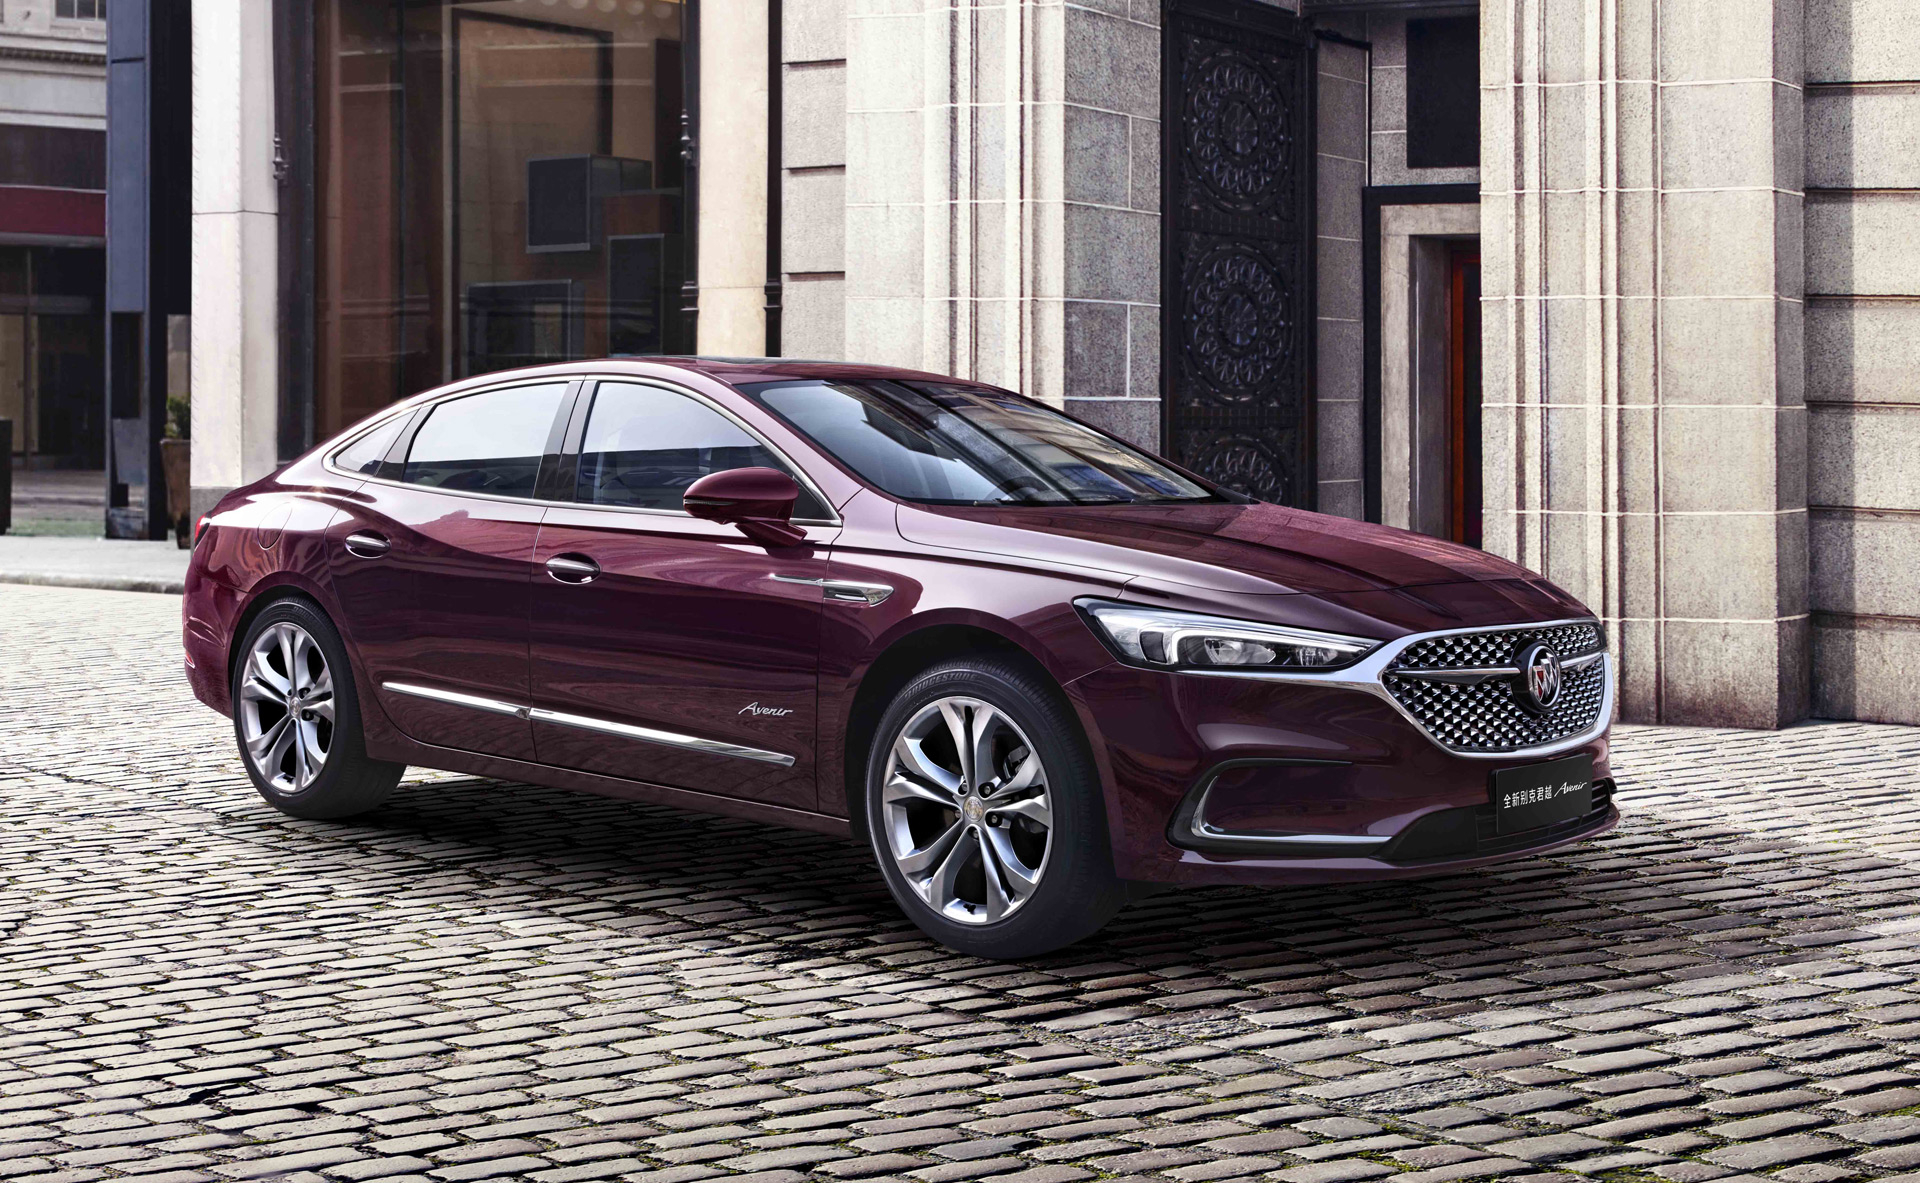 2020 Buick Lacrosse Made Handsome Just As It's Dropped In Us 2021 Buick Lacrosse Exterior Colors, Interior Colors, Dimensions